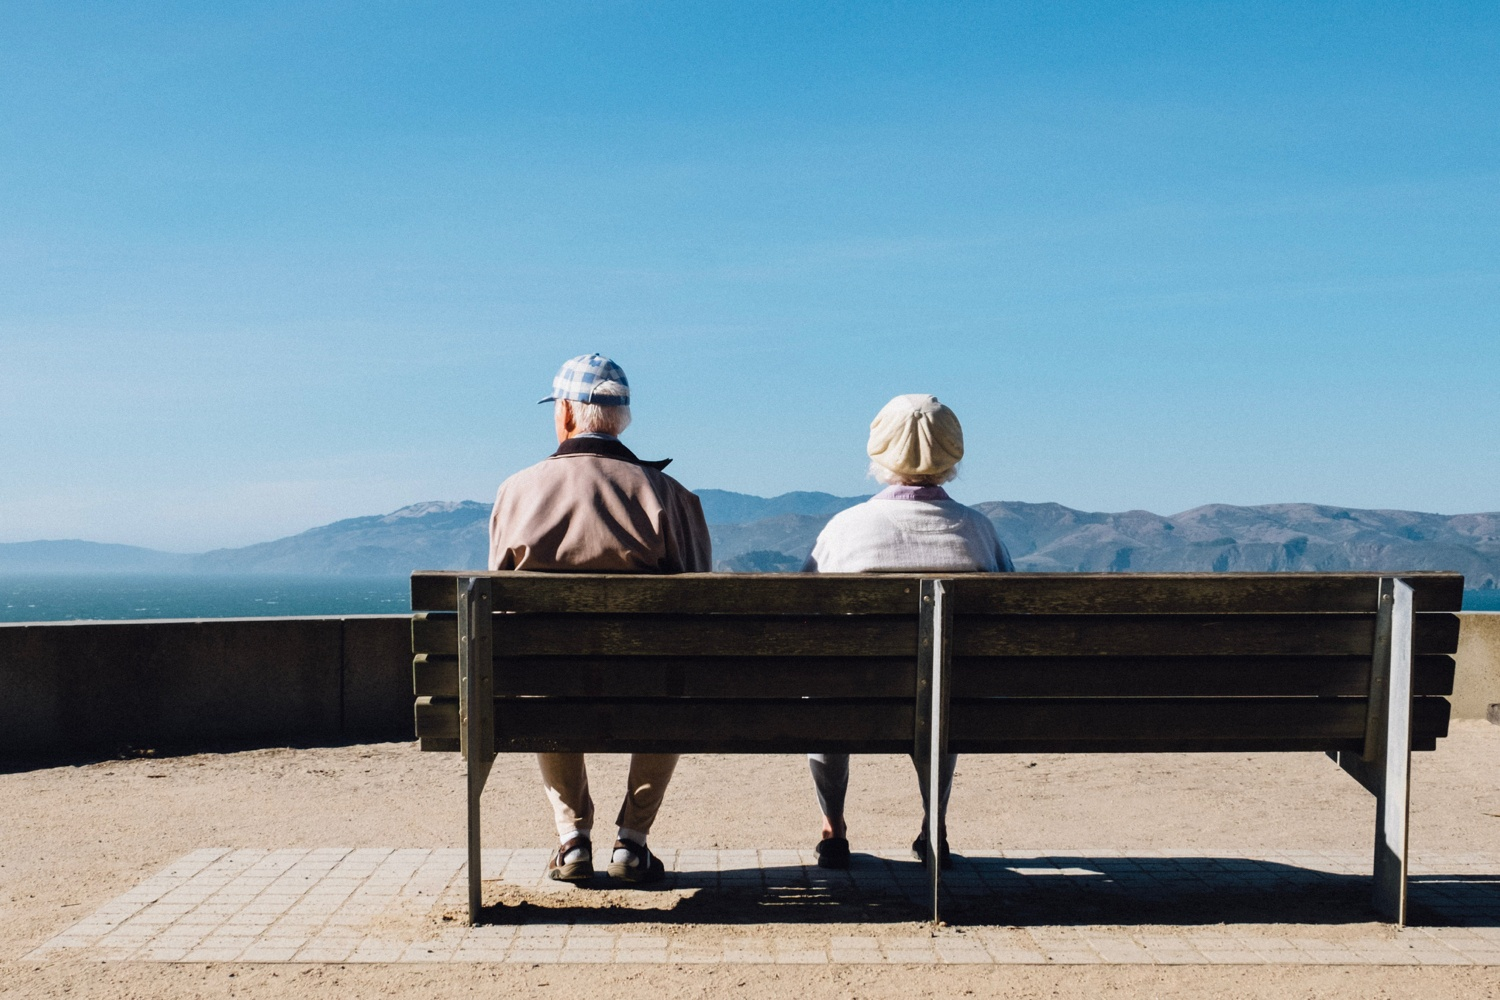 couple enjoying retirement and traveling after paying off mortgage